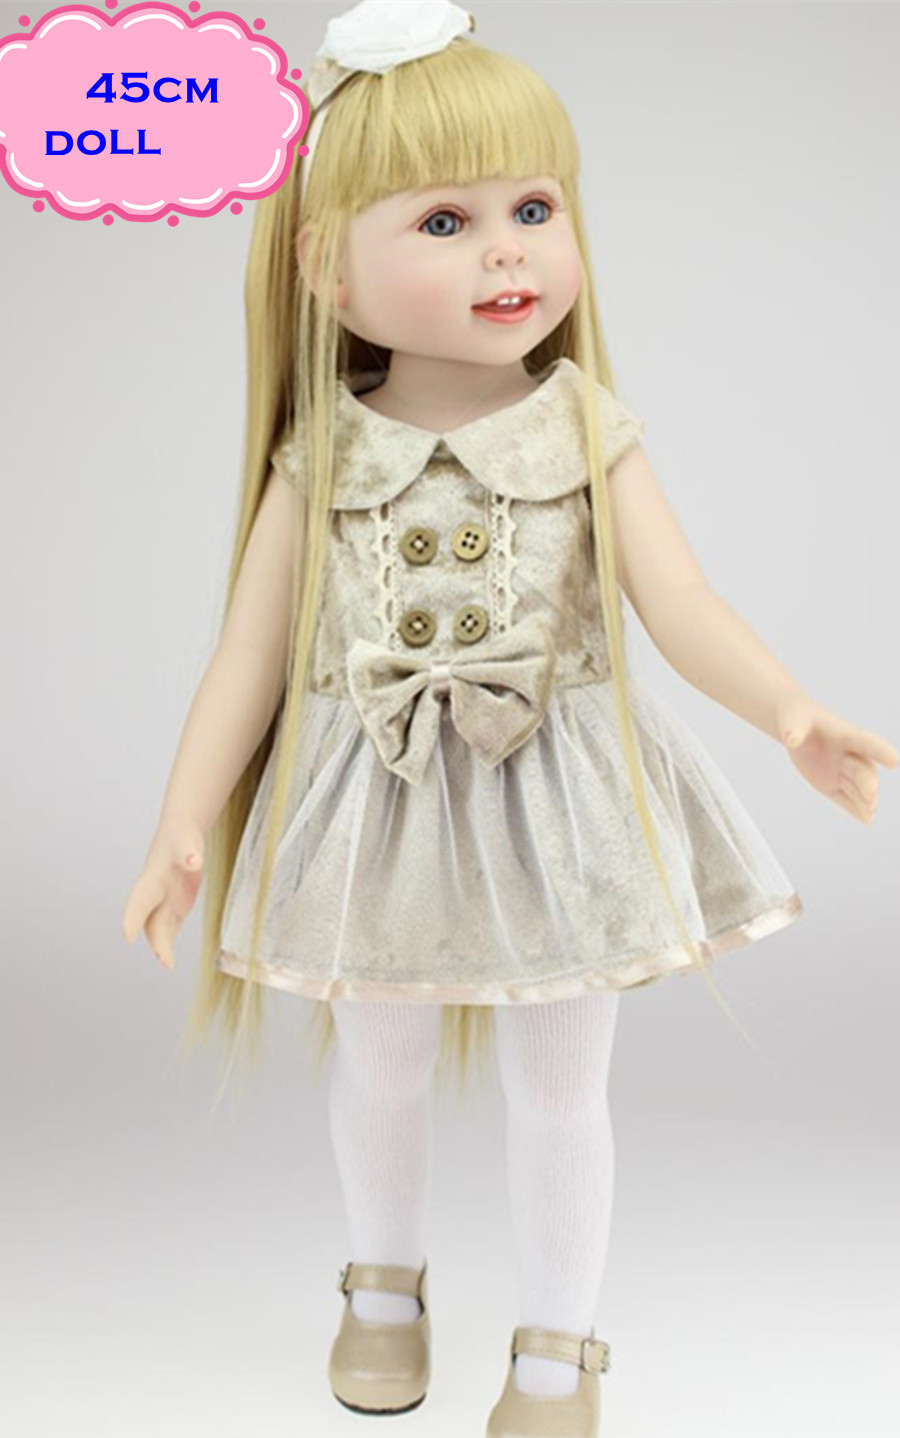 Reborny 45cm NPK American Girl Doll With Delicate Handmade Doll Clothes 18inch Full Vinyl Silicone Baby Dolls Toys For Girls new arrived handmade american 18 inch girl doll vinyl princess smiling girls looks so pretty baby doll toys for children